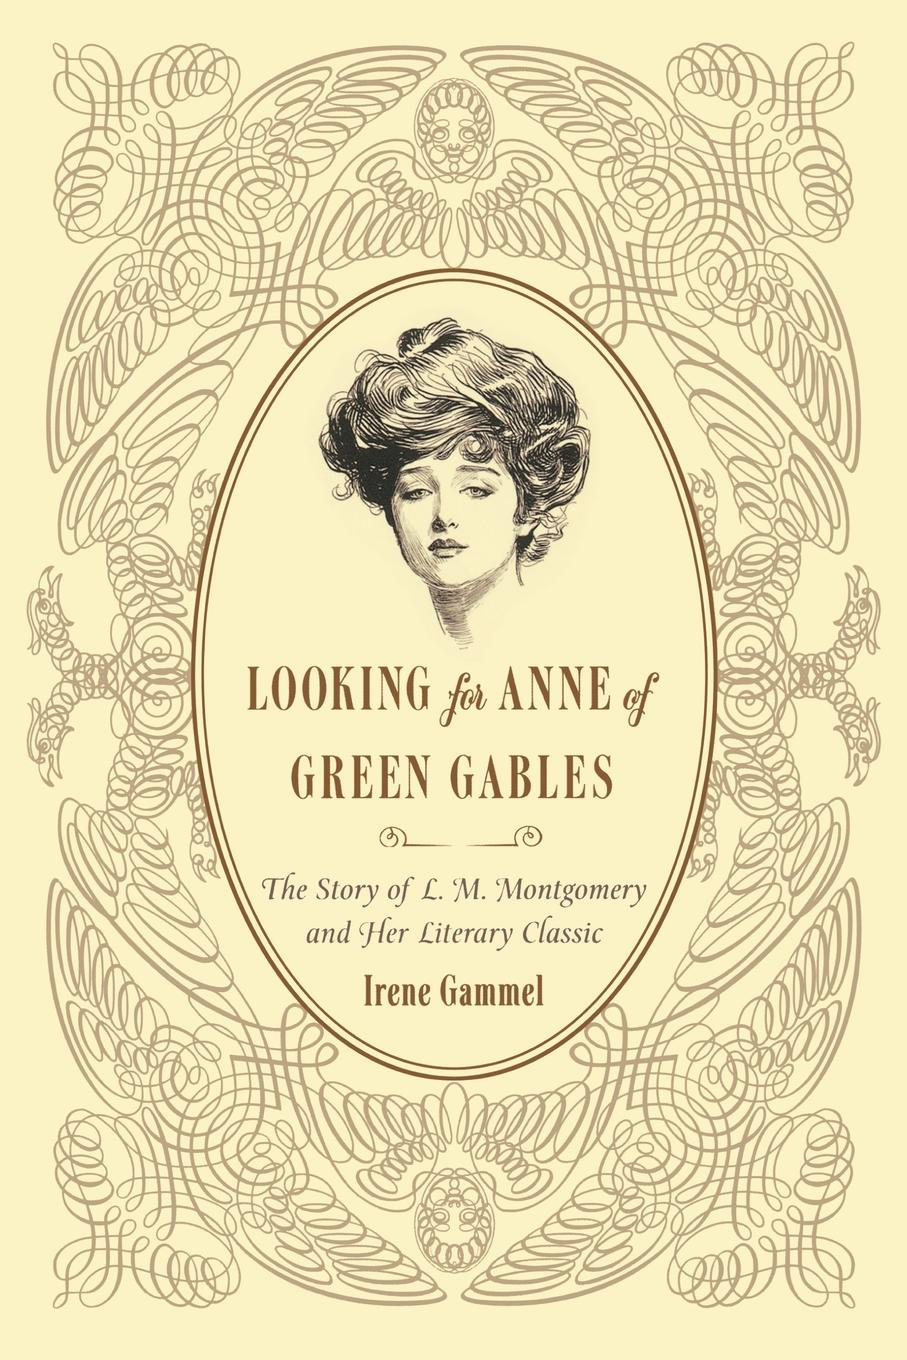 лучшая цена Irene Gammel Looking for Anne of Green Gables